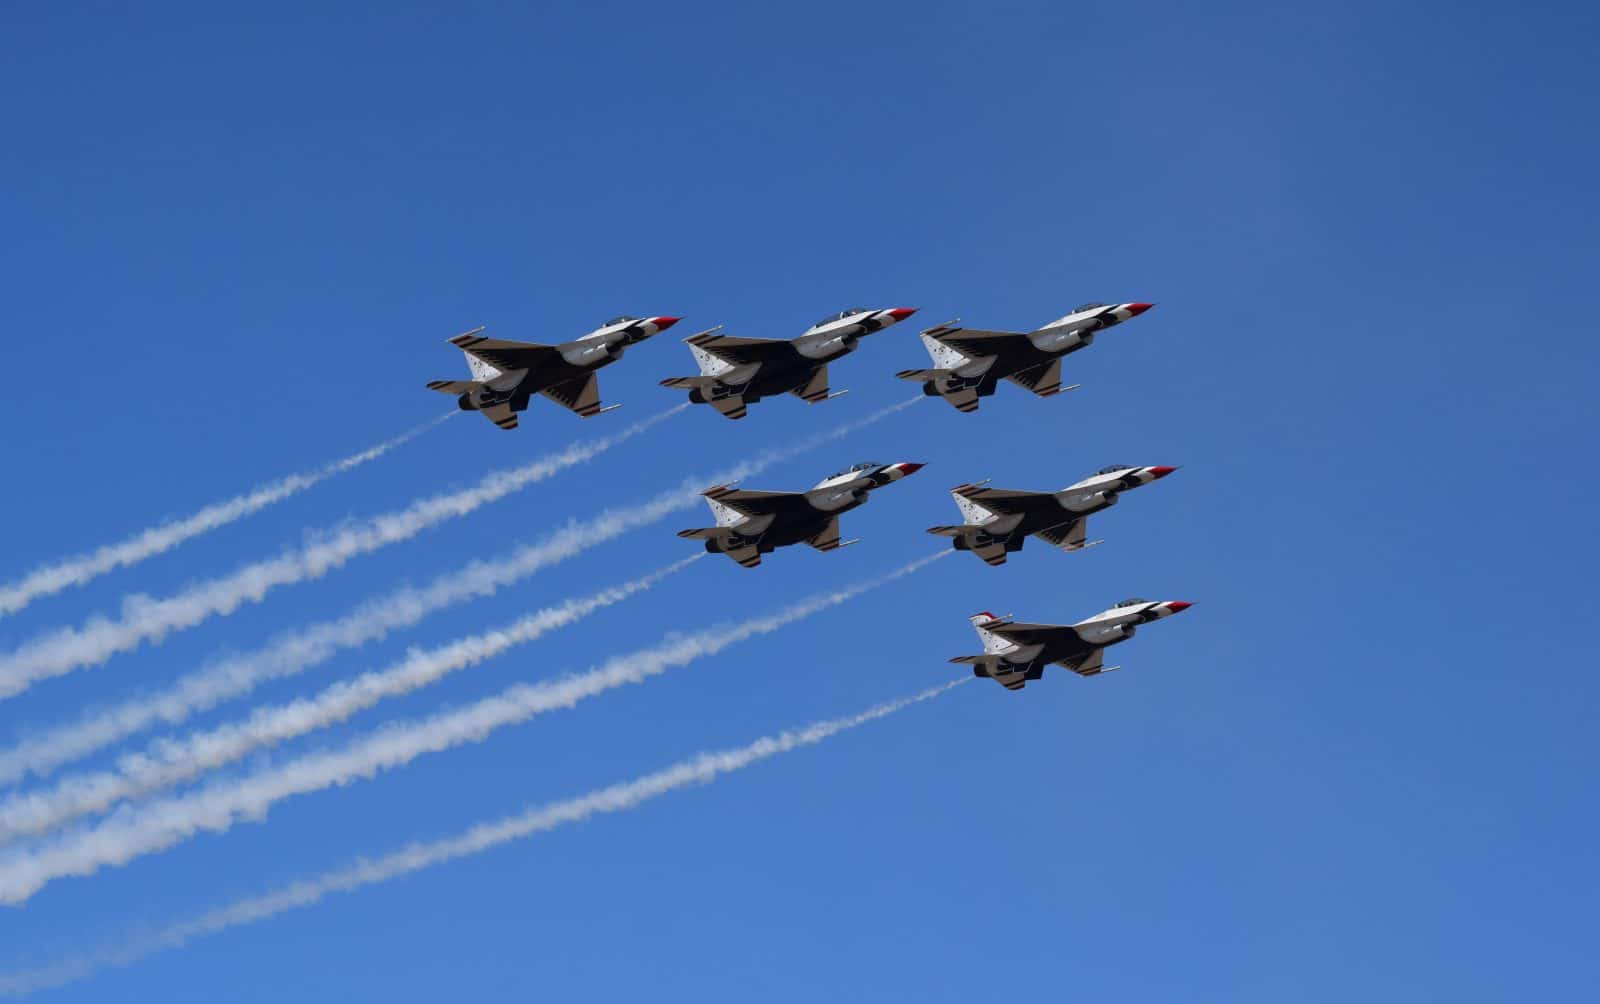 quick loans same day jet fighters in formation flying fast